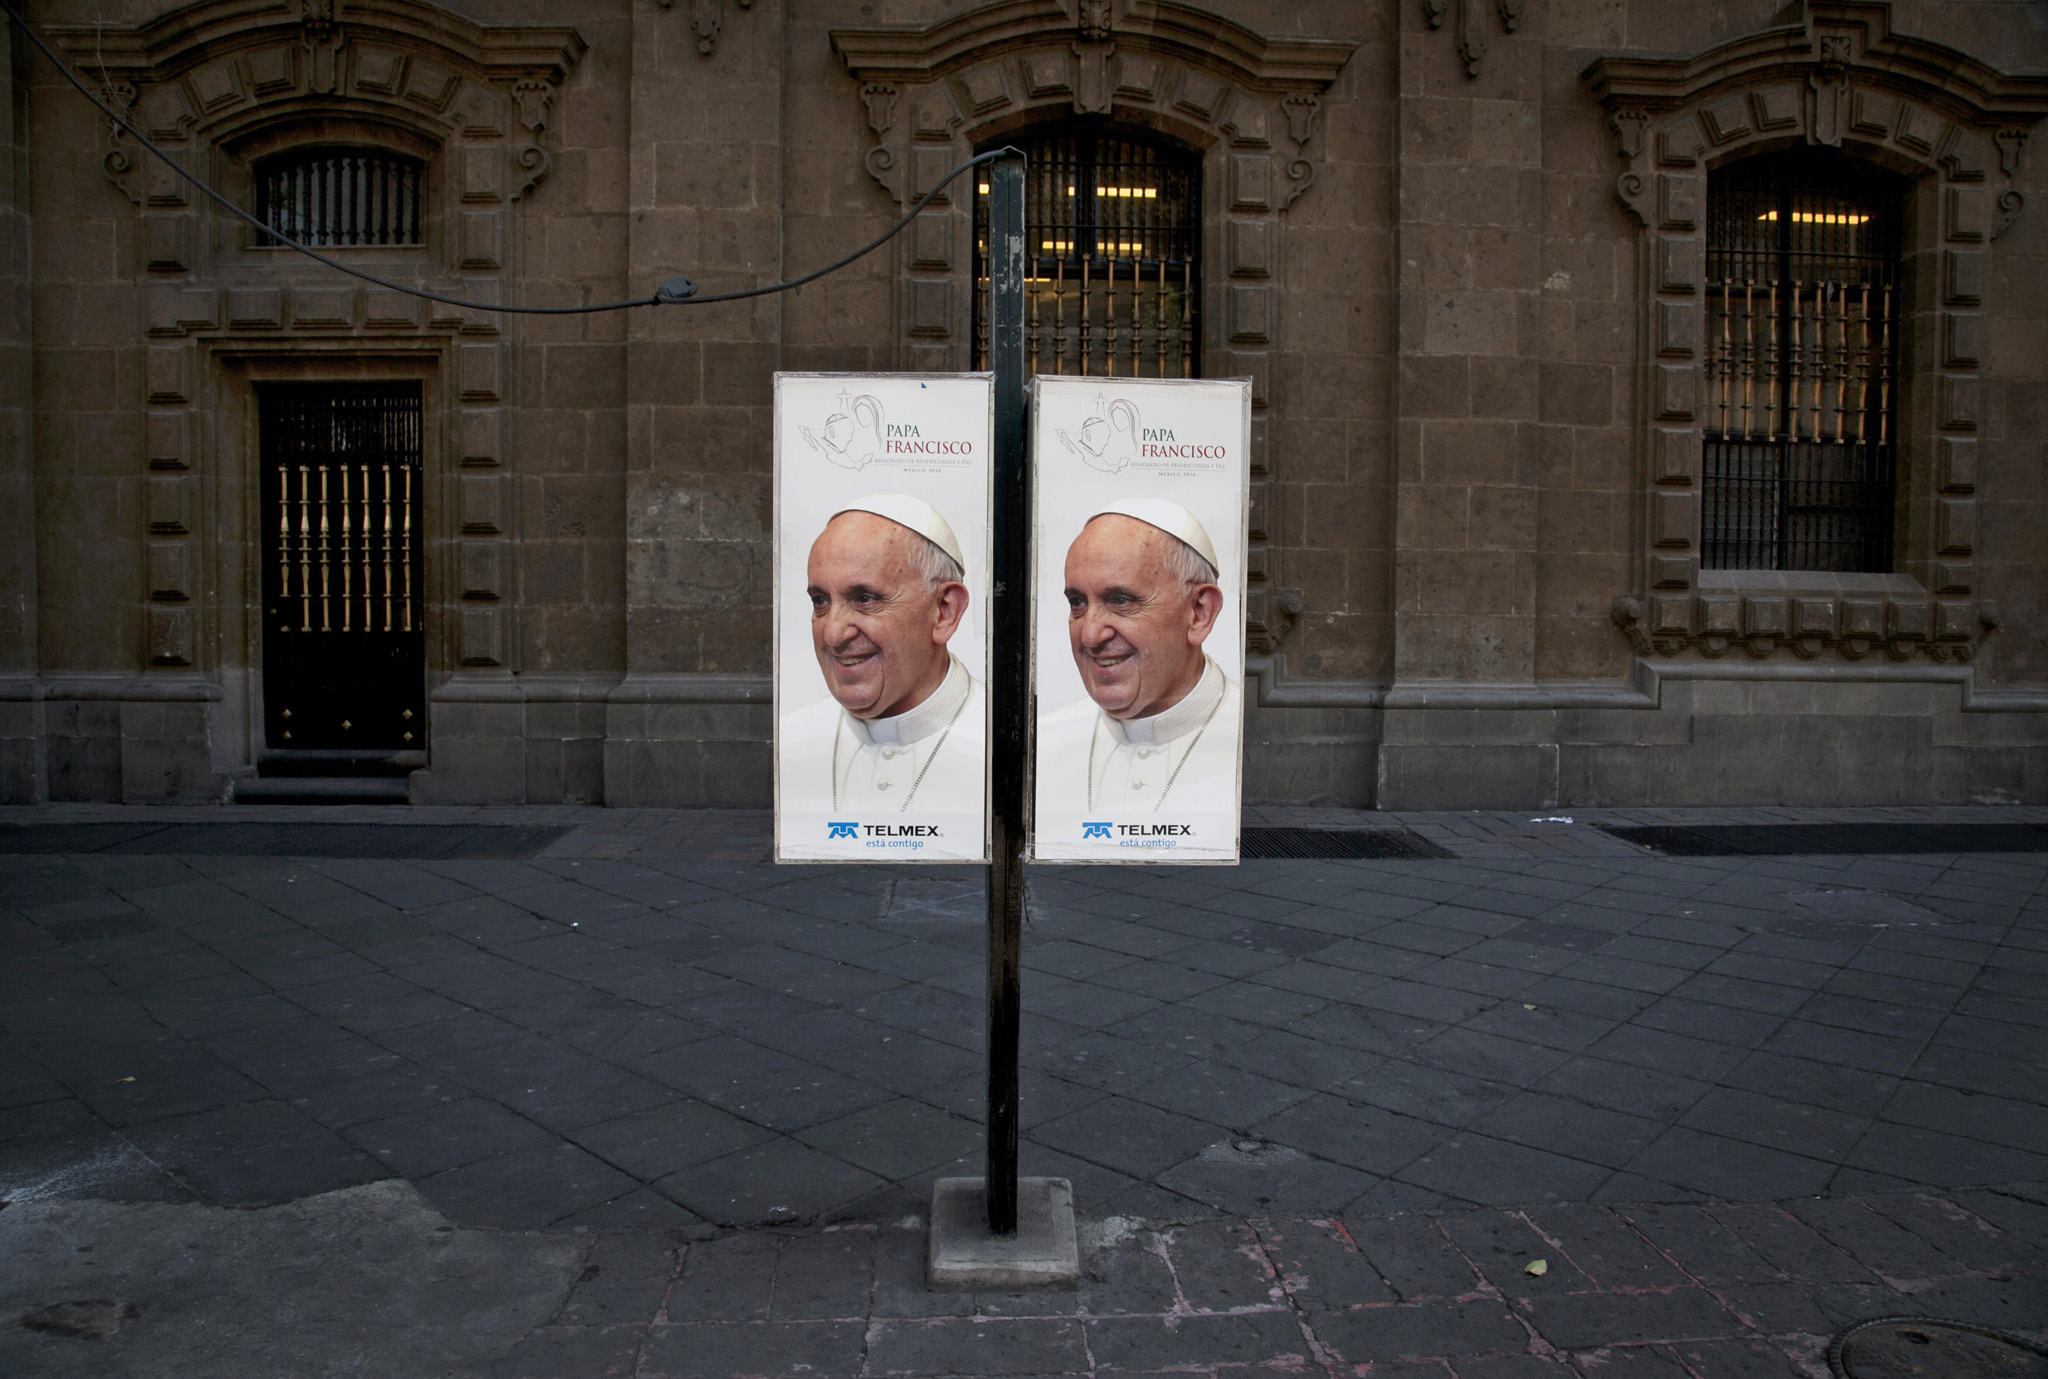 Public phone booths are covered with images of Pope Francis in downtown Mexico City